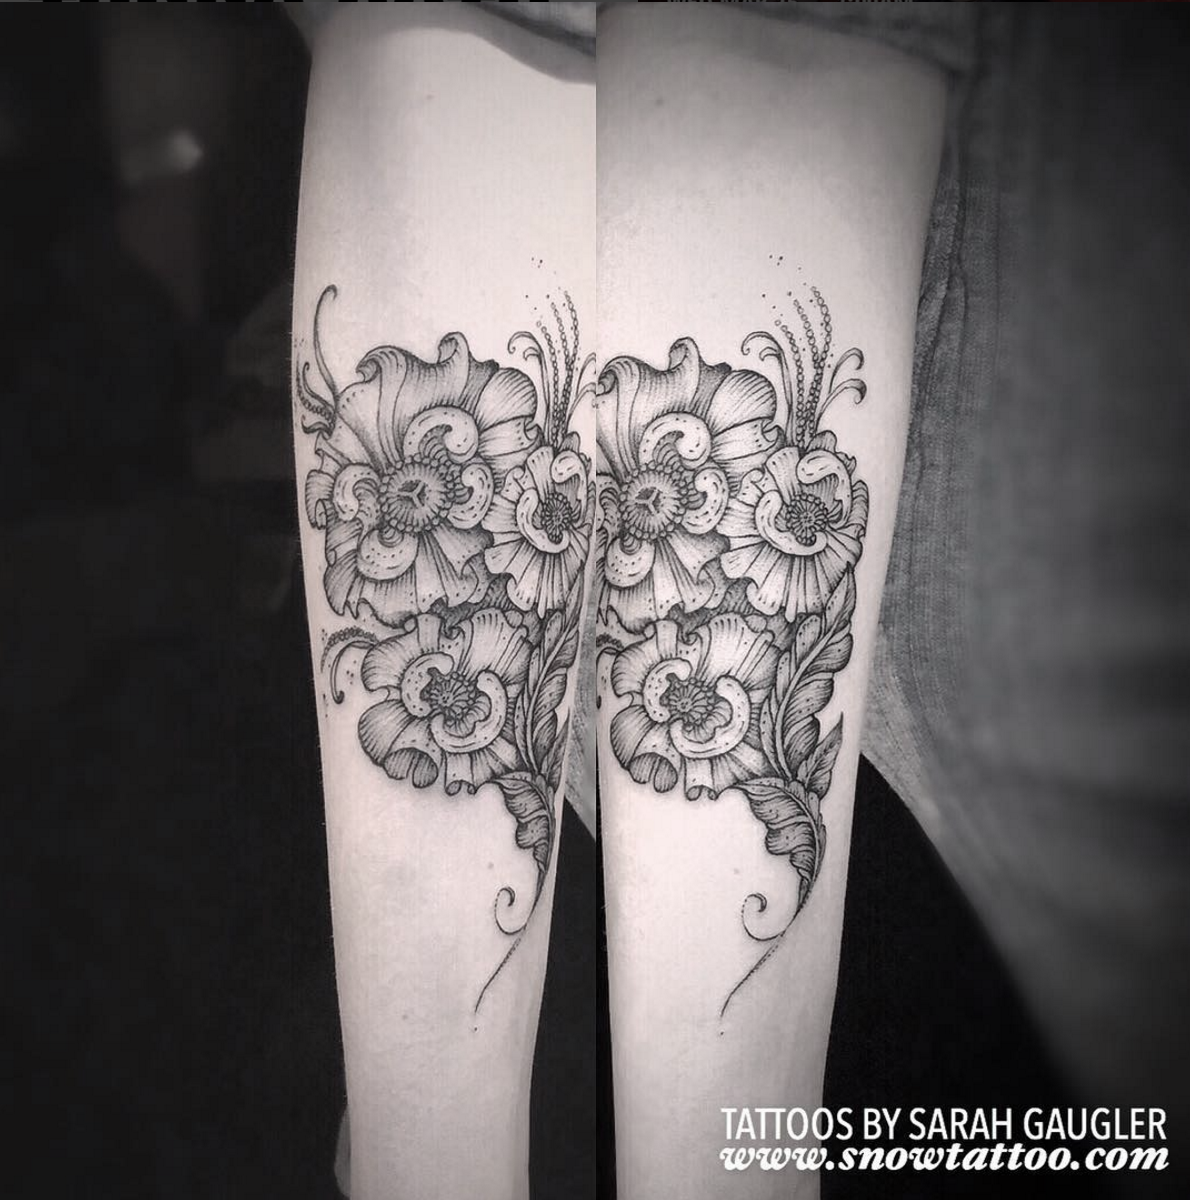 Sarah Gaugler Snow Tattoo Custom Floral Poppy Freehand Original Signature Design New York Best Tattoos Best Tattoo Artist NYC.png